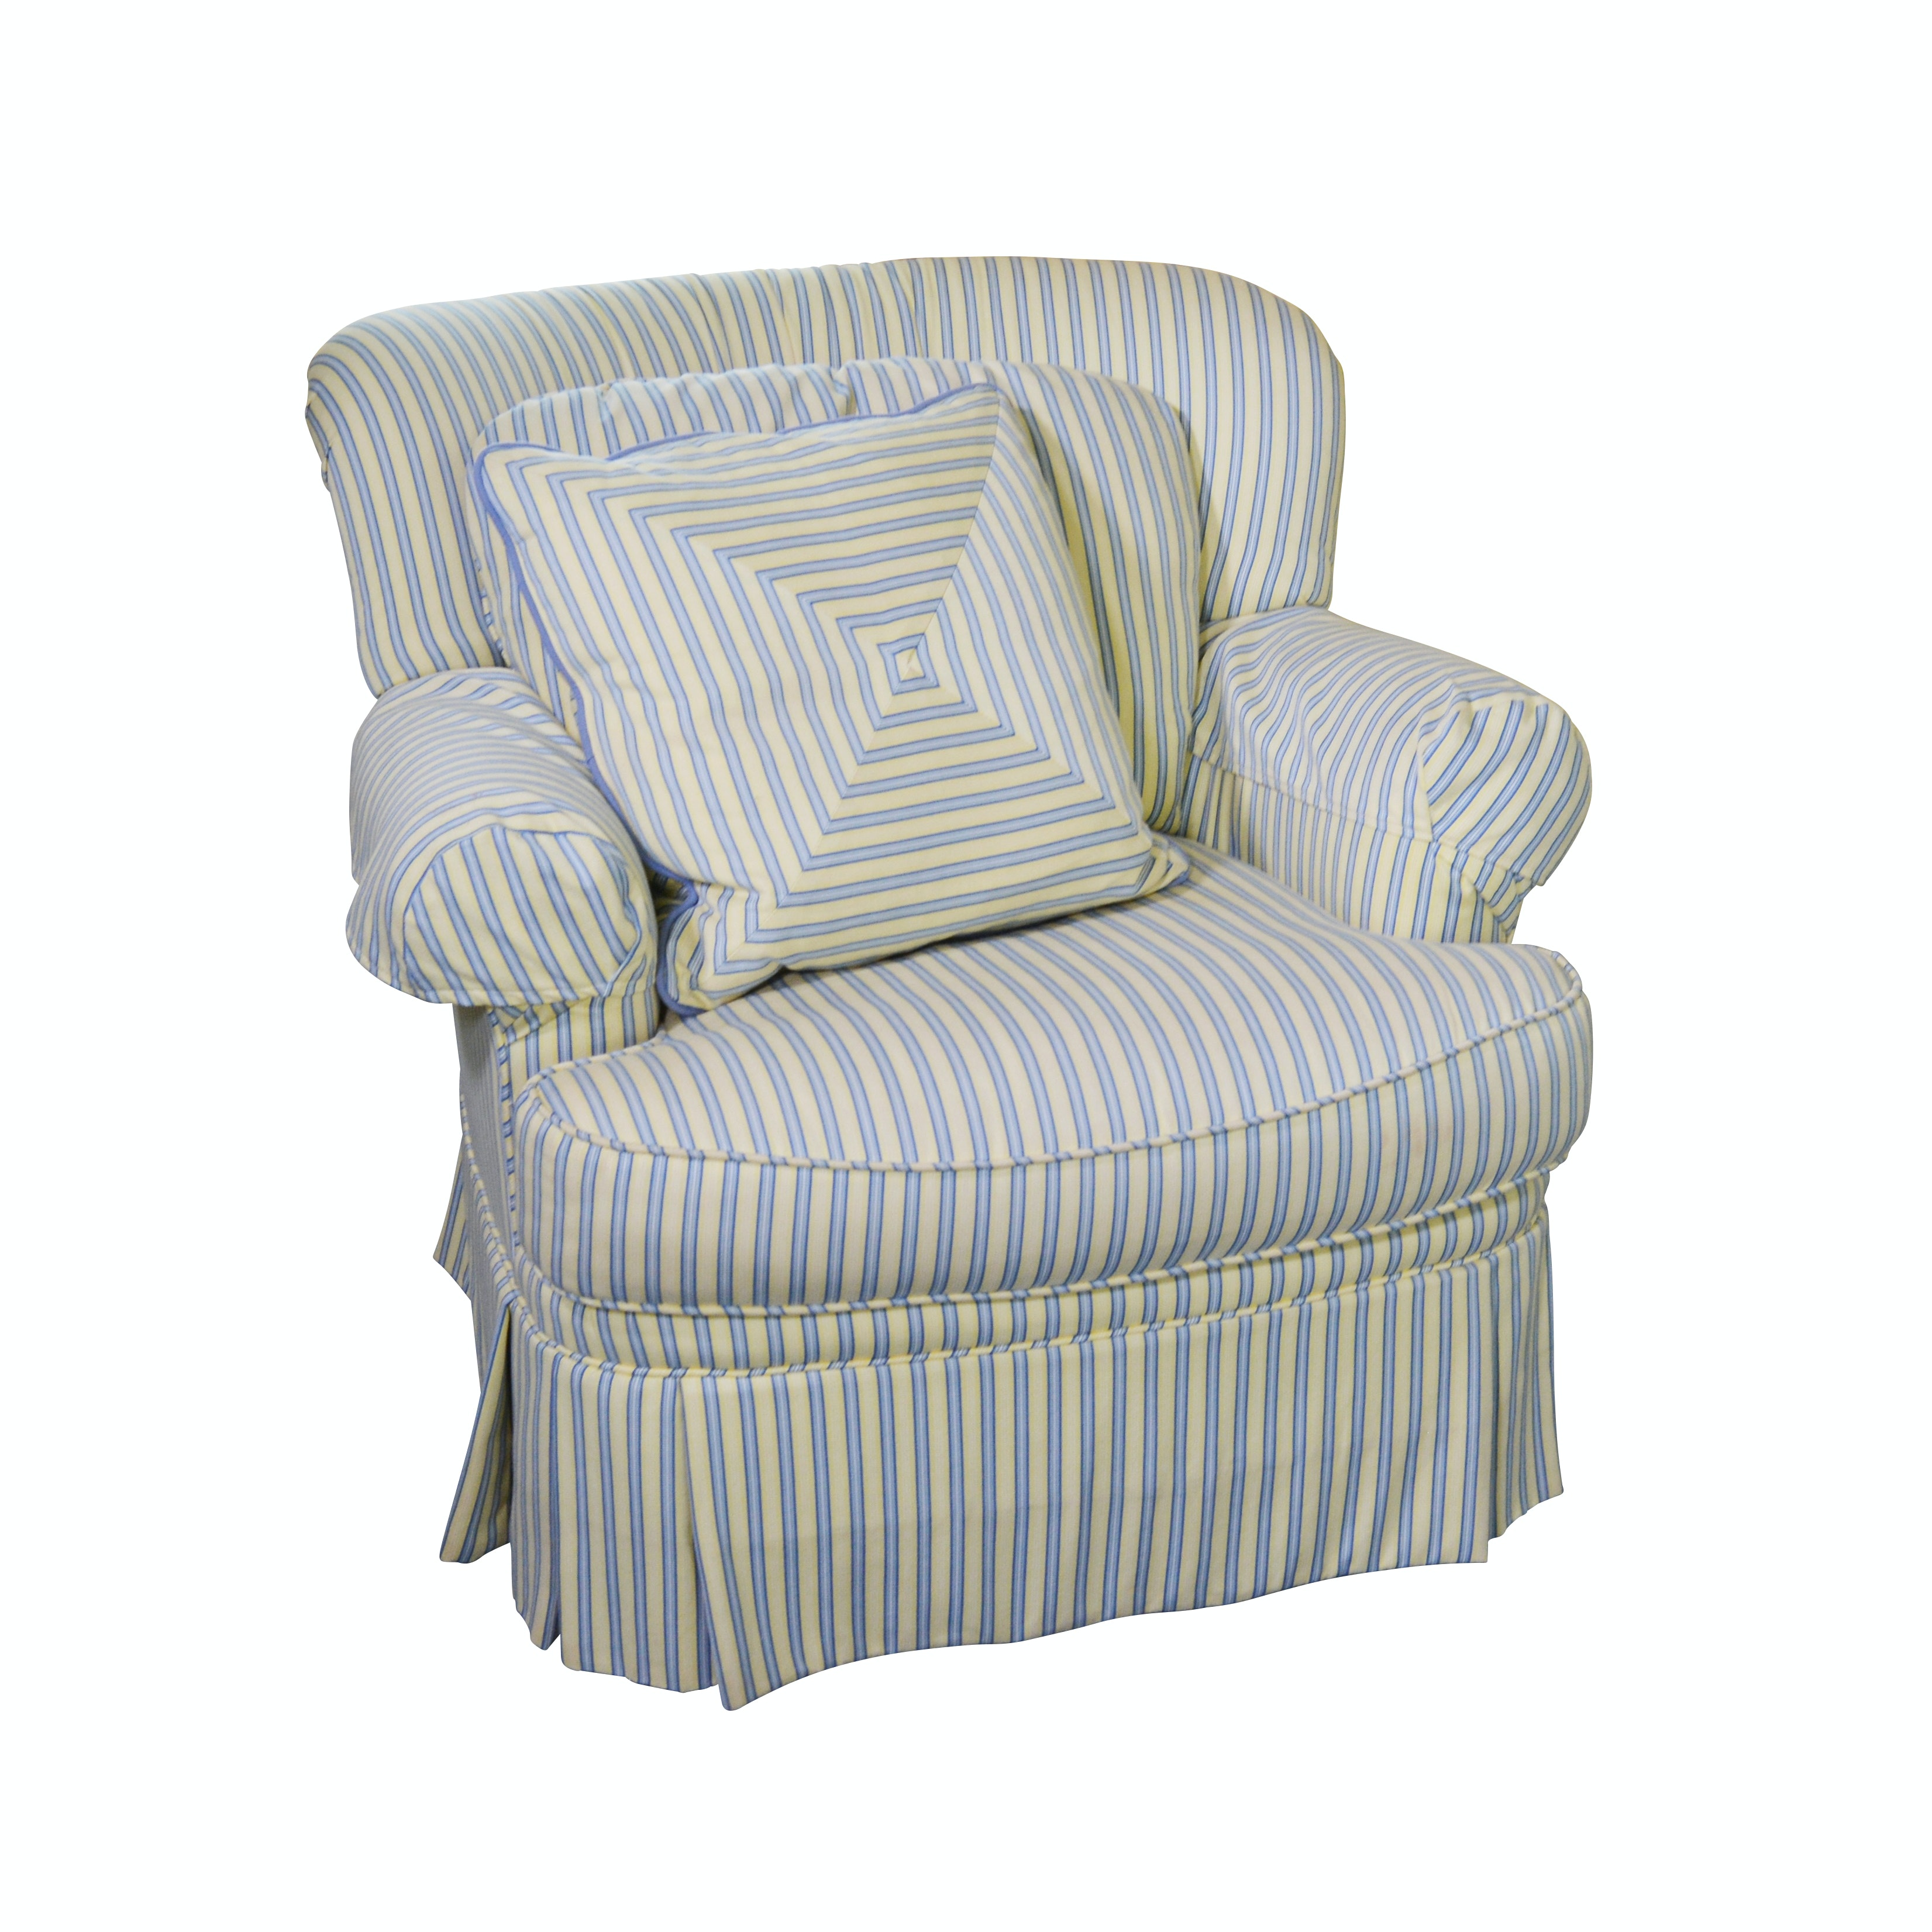 Pearson Striped Upholstered Swivel Chair, Contemporary